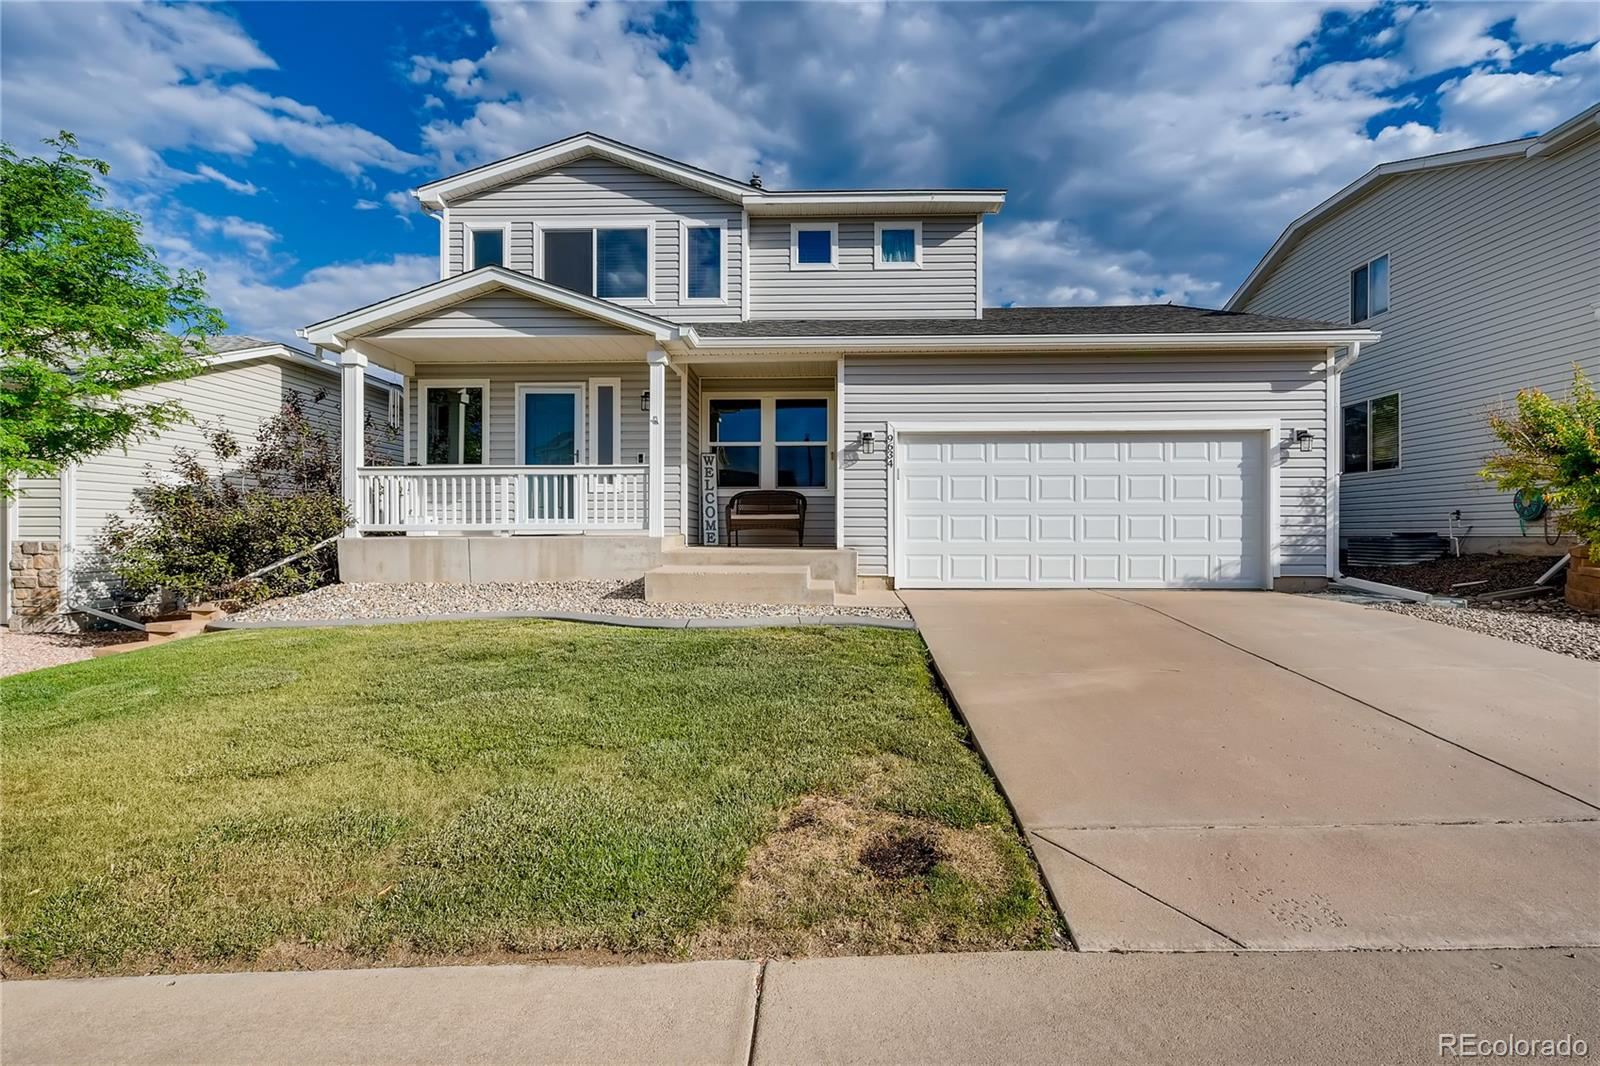 9634 Fox Den Drive, Littleton, CO 80125 - #: 1928480